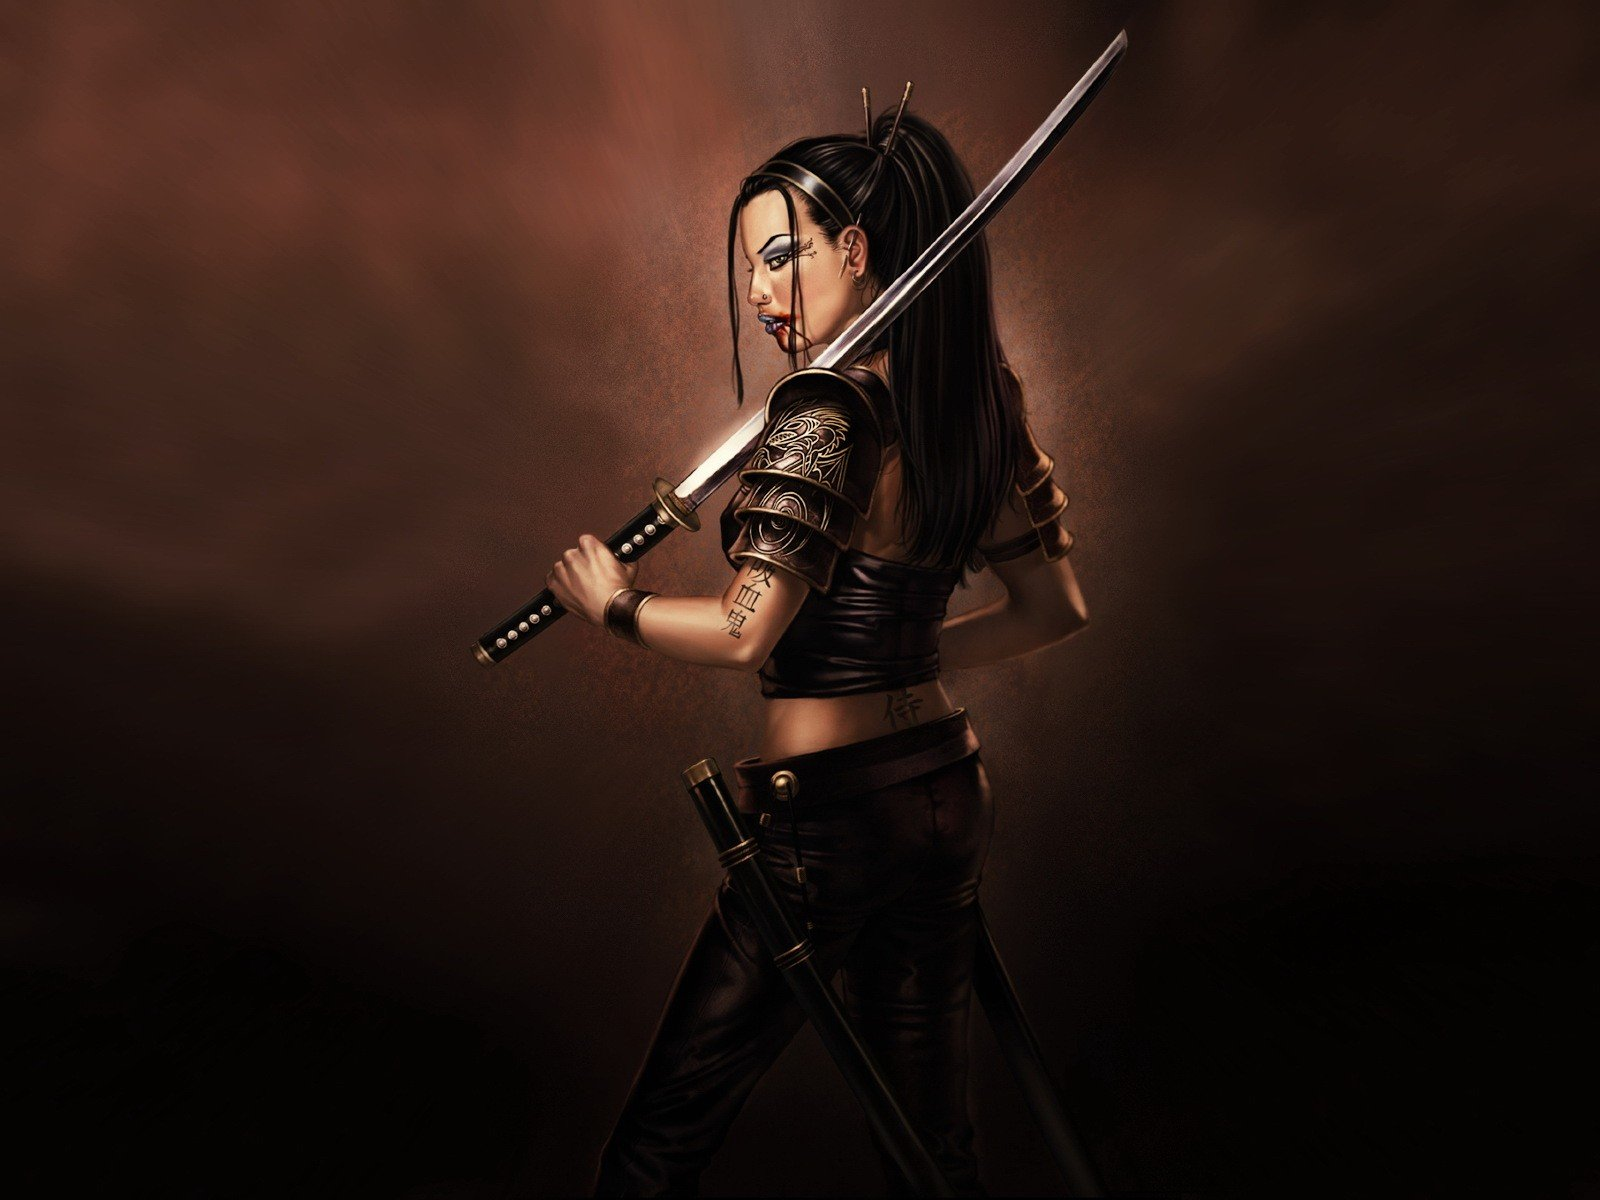 Women Samurai Wallpaper 1600x1200 Women Samurai 1600x1200